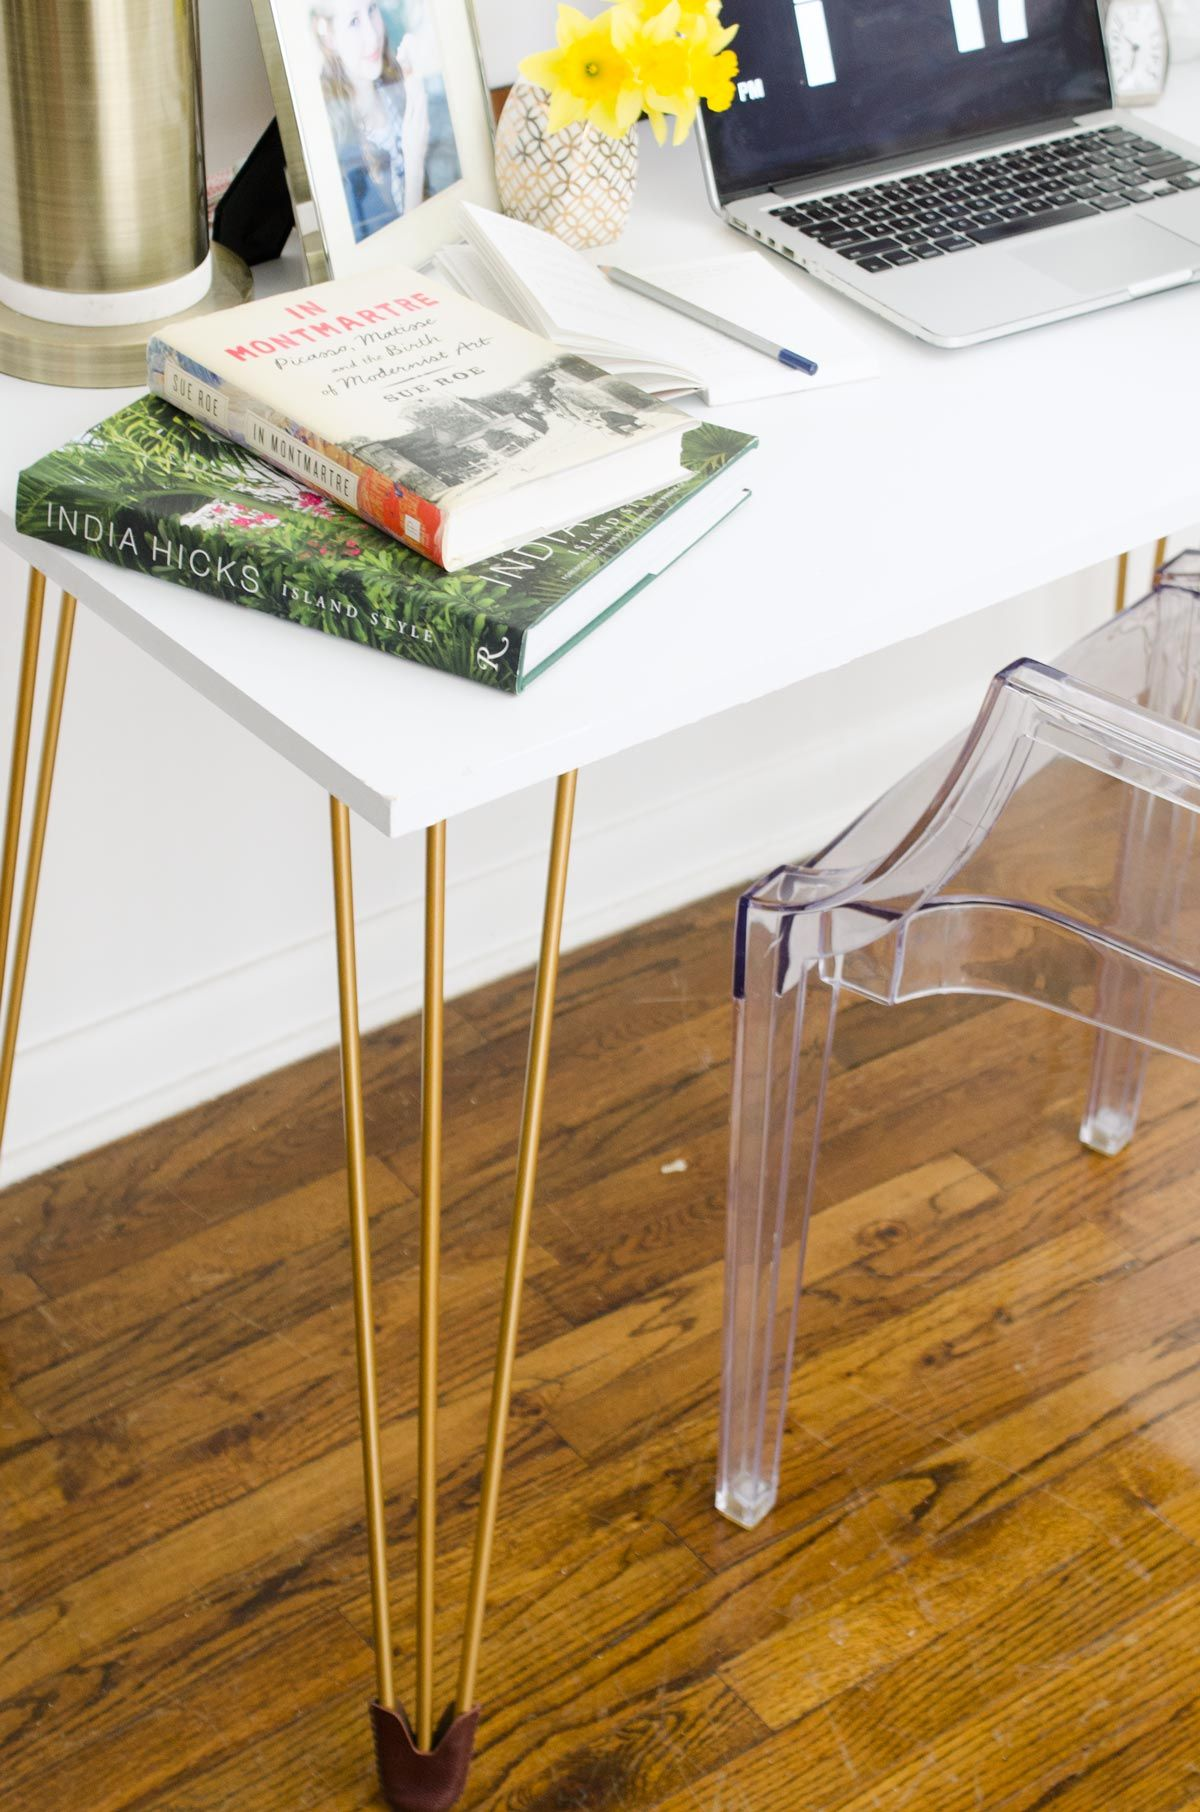 Diy Desk With Gold Hairpin Legs Apartment Living Diy Desk Diy